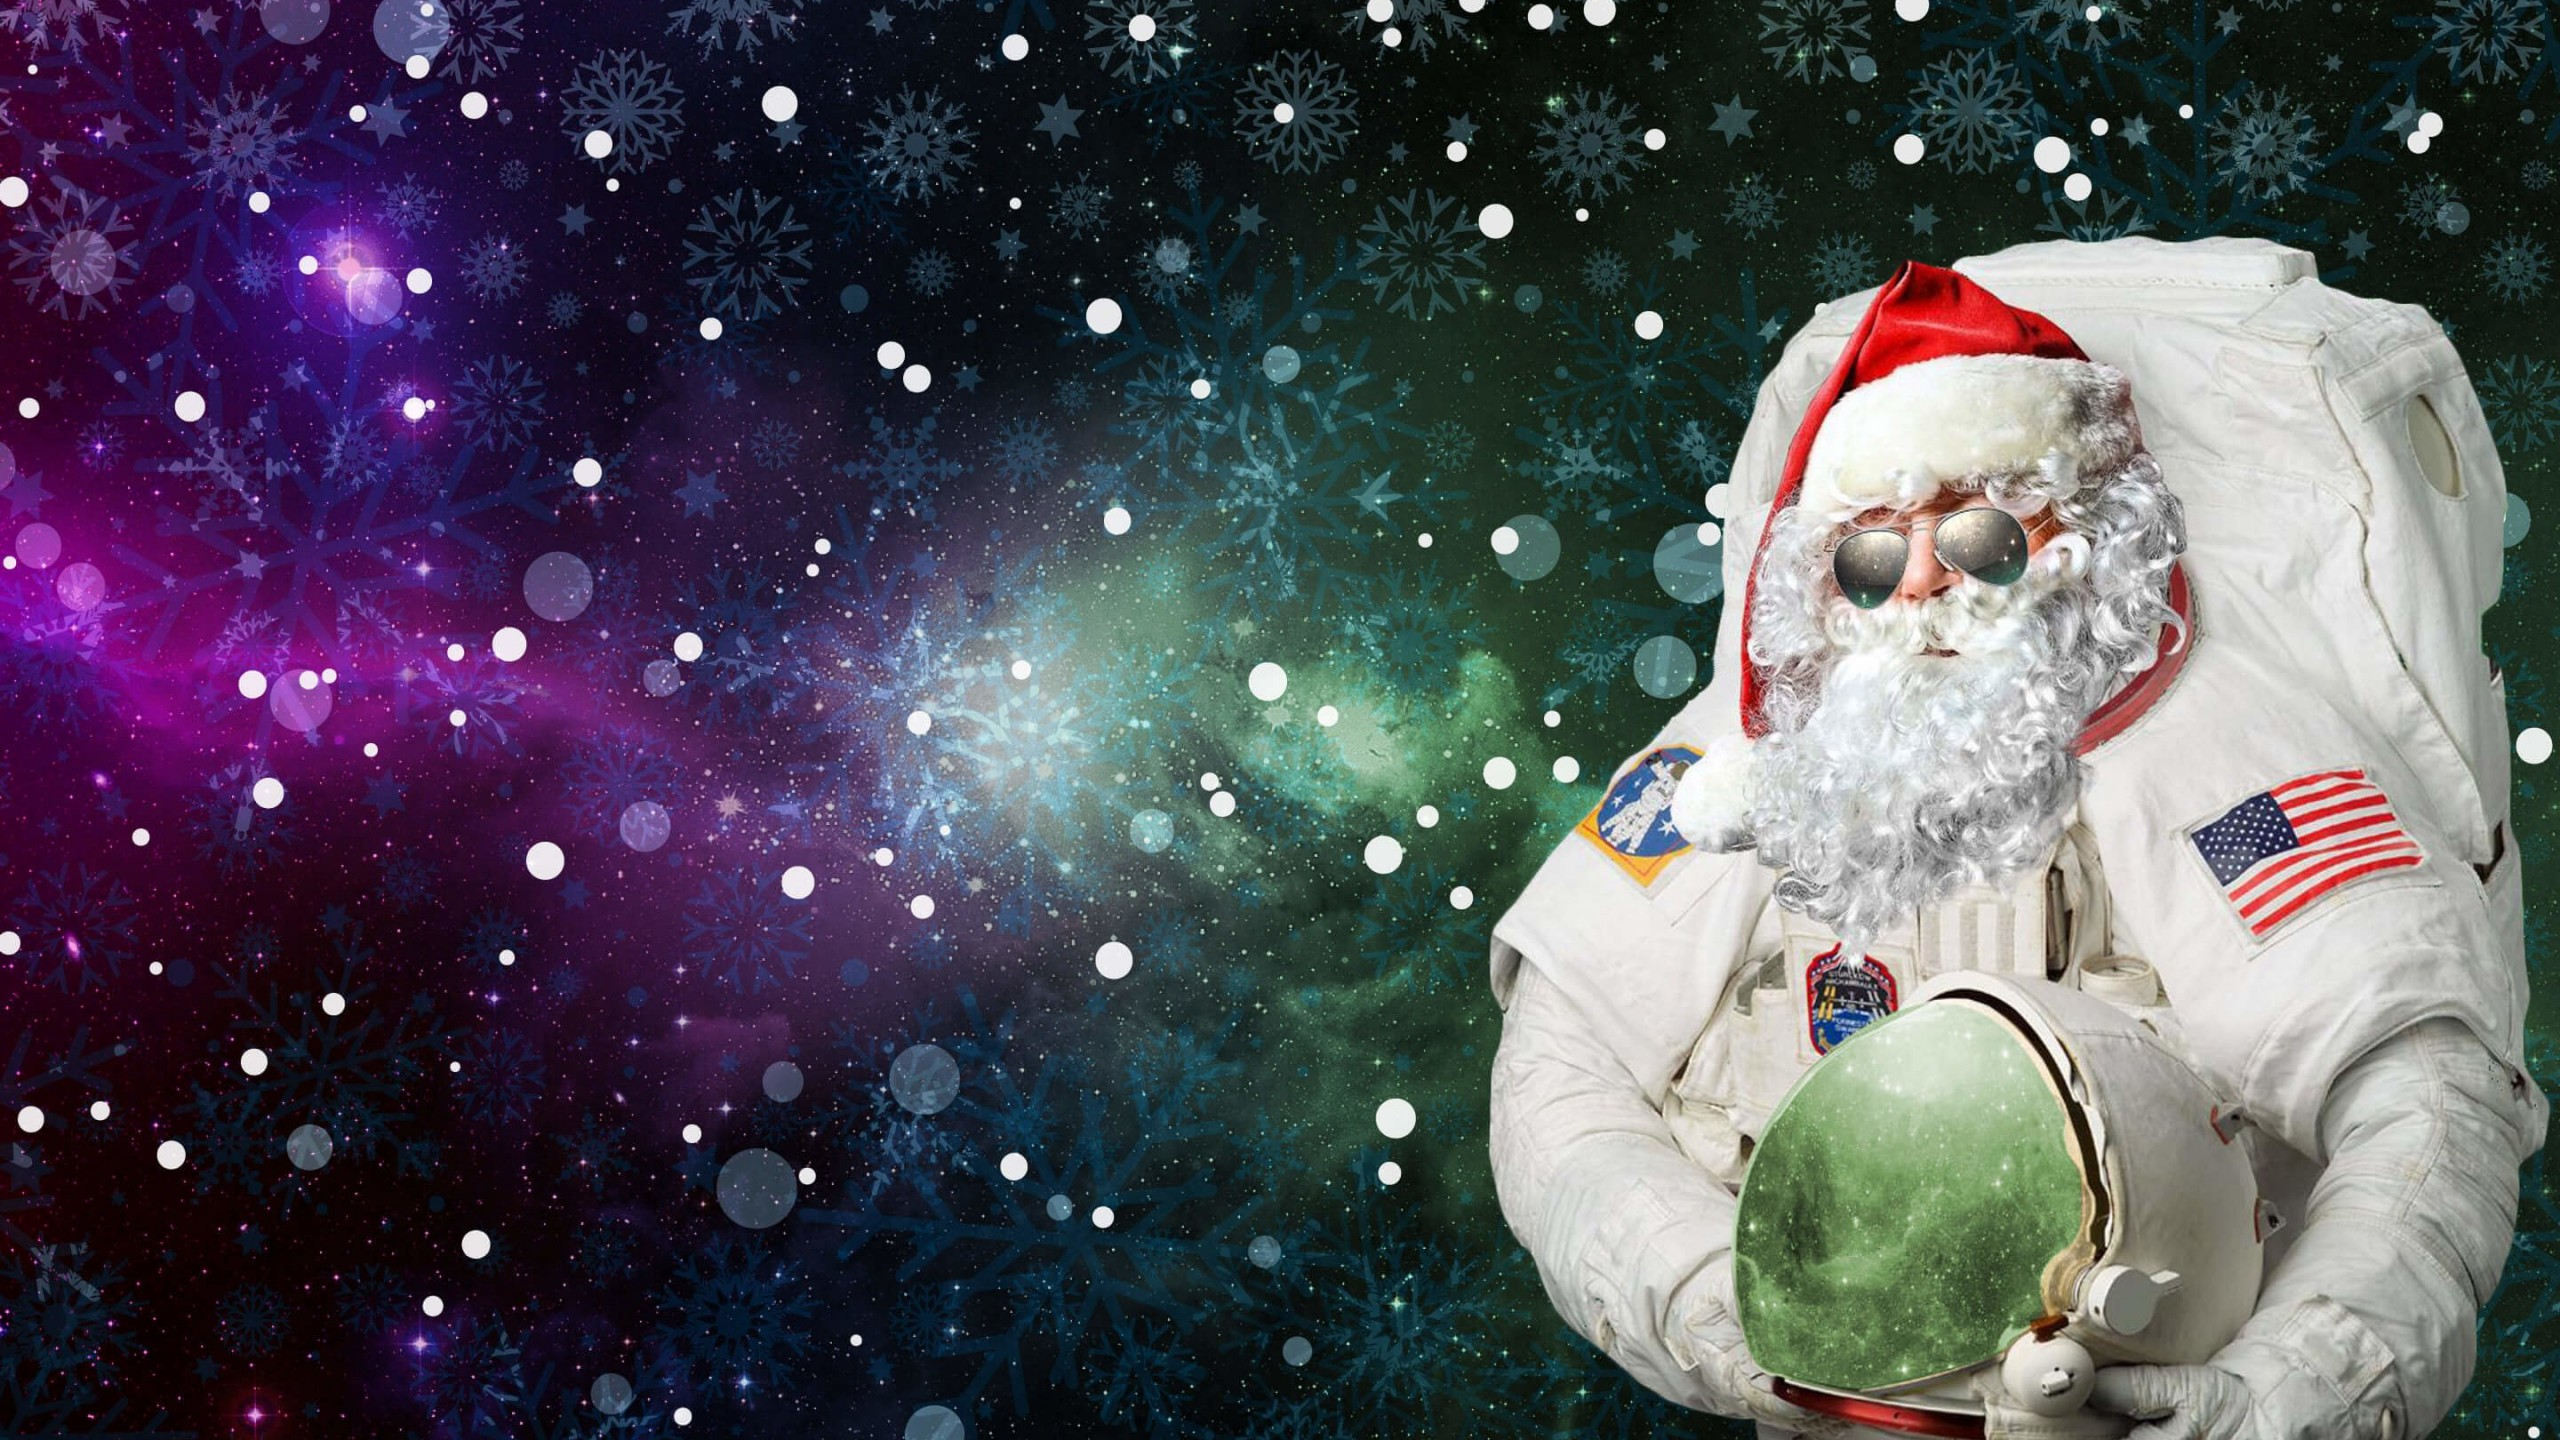 Astro Santa Wallpaper for Social Media YouTube Channel Art